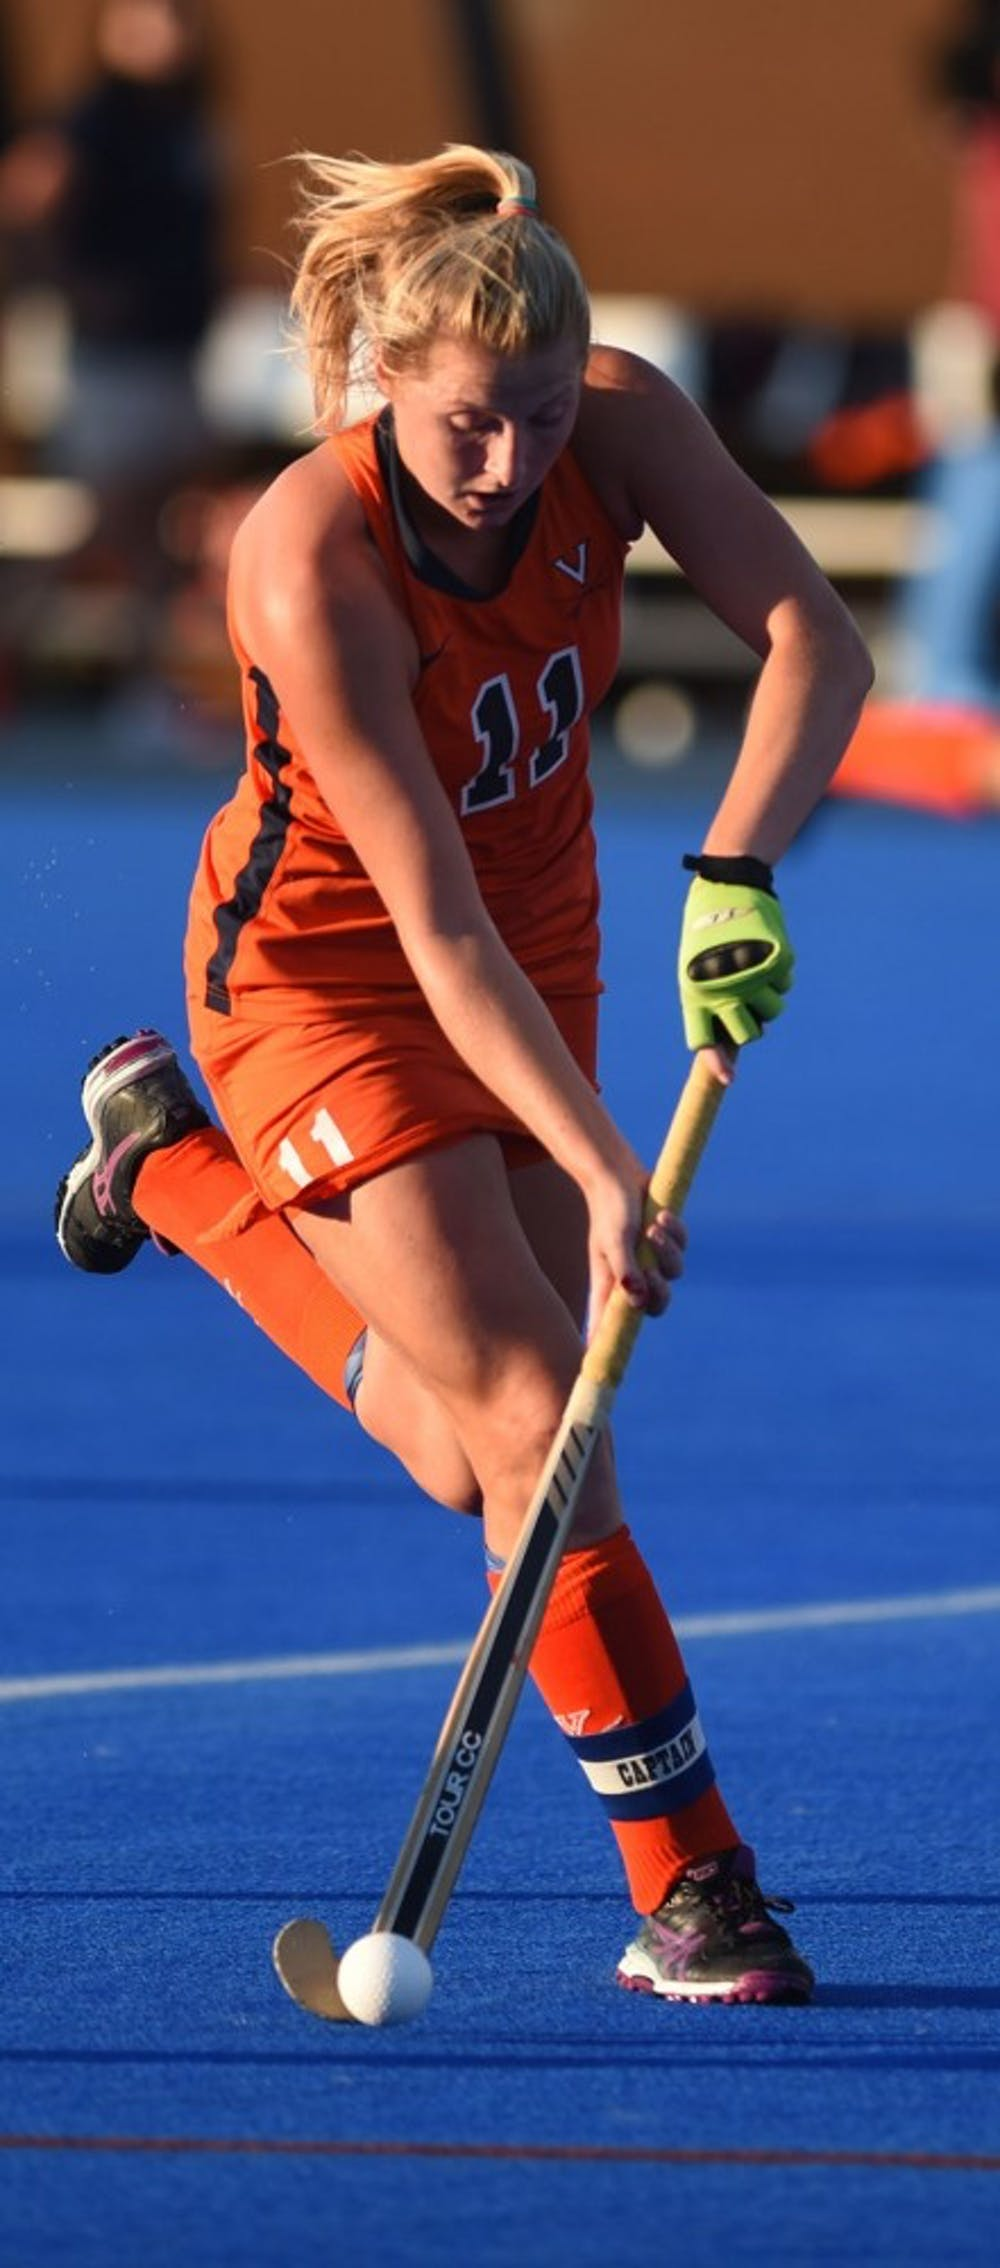 <p>The Cavaliers will take on an inconsistent William & Mary (5-6, 2-1 CAA) team Tuesday. Senior midfielder Lucy Hyams will look to continue her strong play.&nbsp;</p>